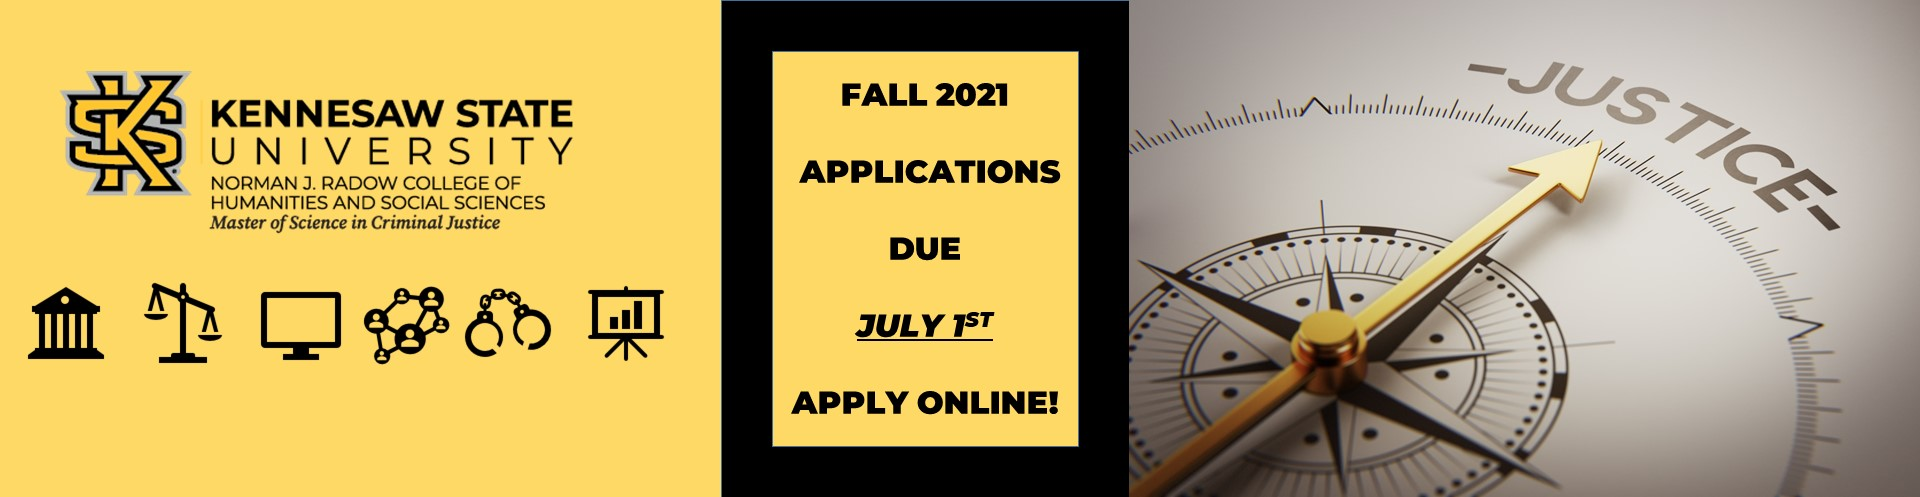 Apply now for fall 2021 Admission!